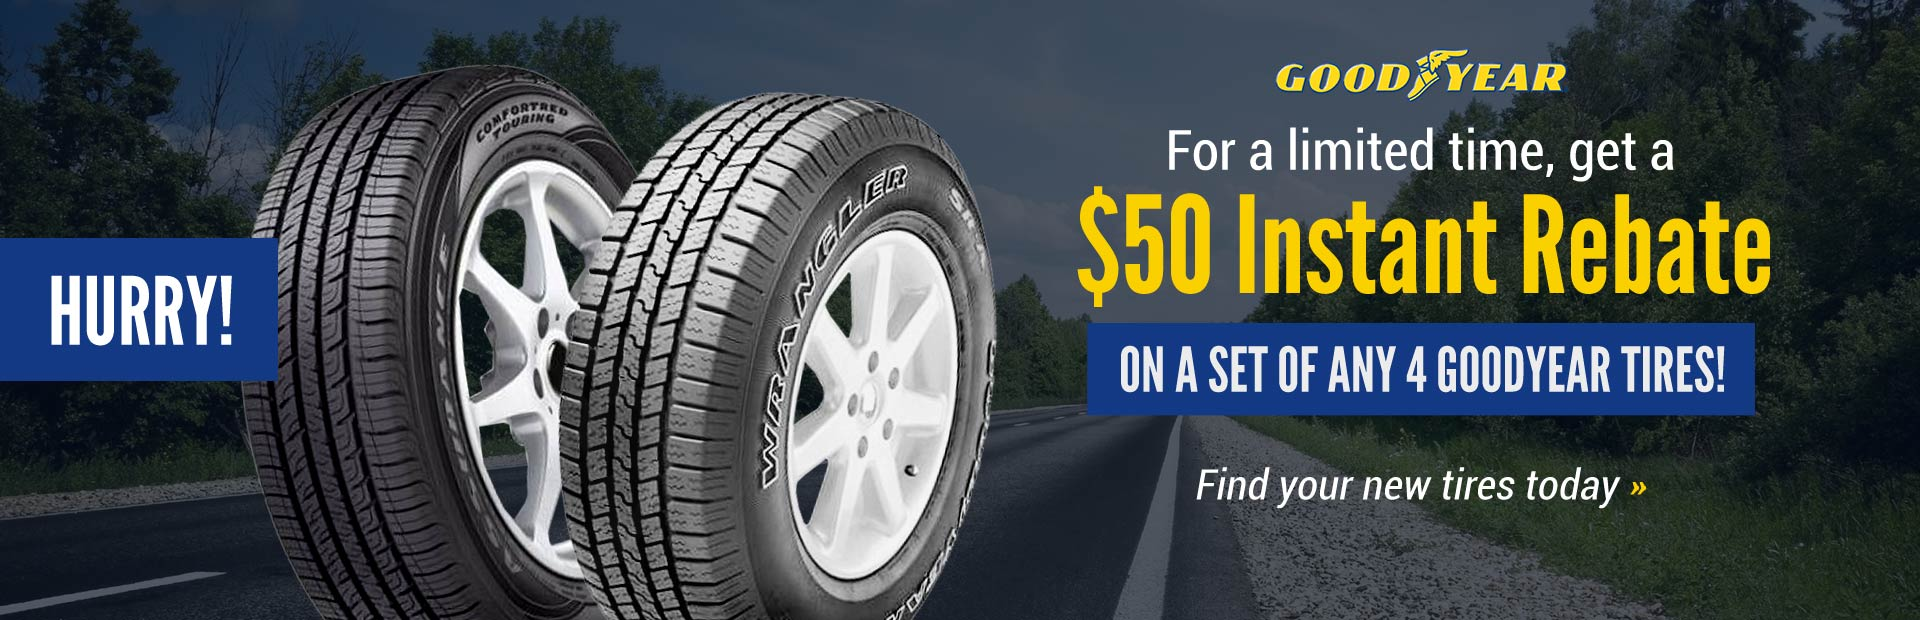 Hurry! For a limited time, get a $50 instant rebate on a set of any 4 Goodyear tires!